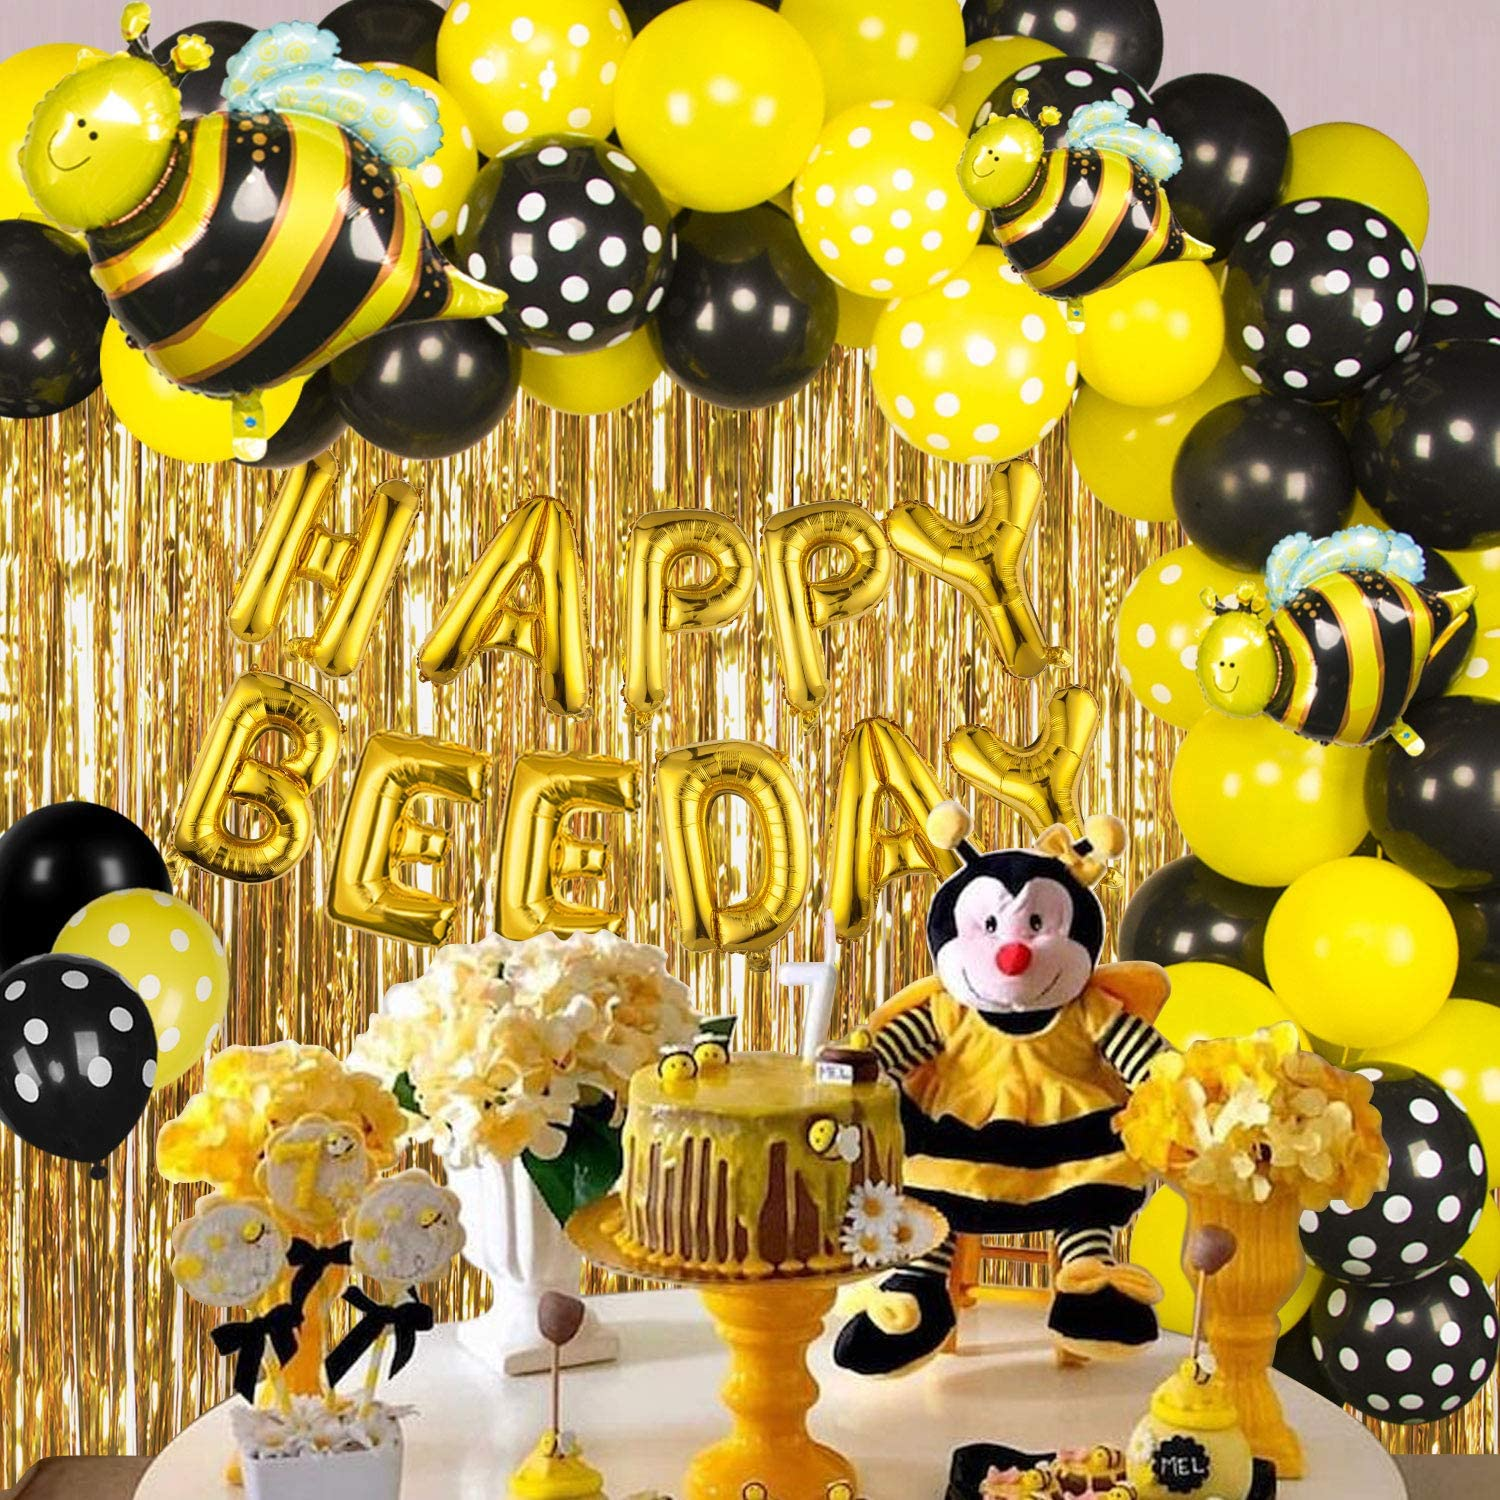 bee party decorations with gold foil fringe curtain 66pcs bee day balloons with bumble bee balloons black yellow balloons for bee baby shower